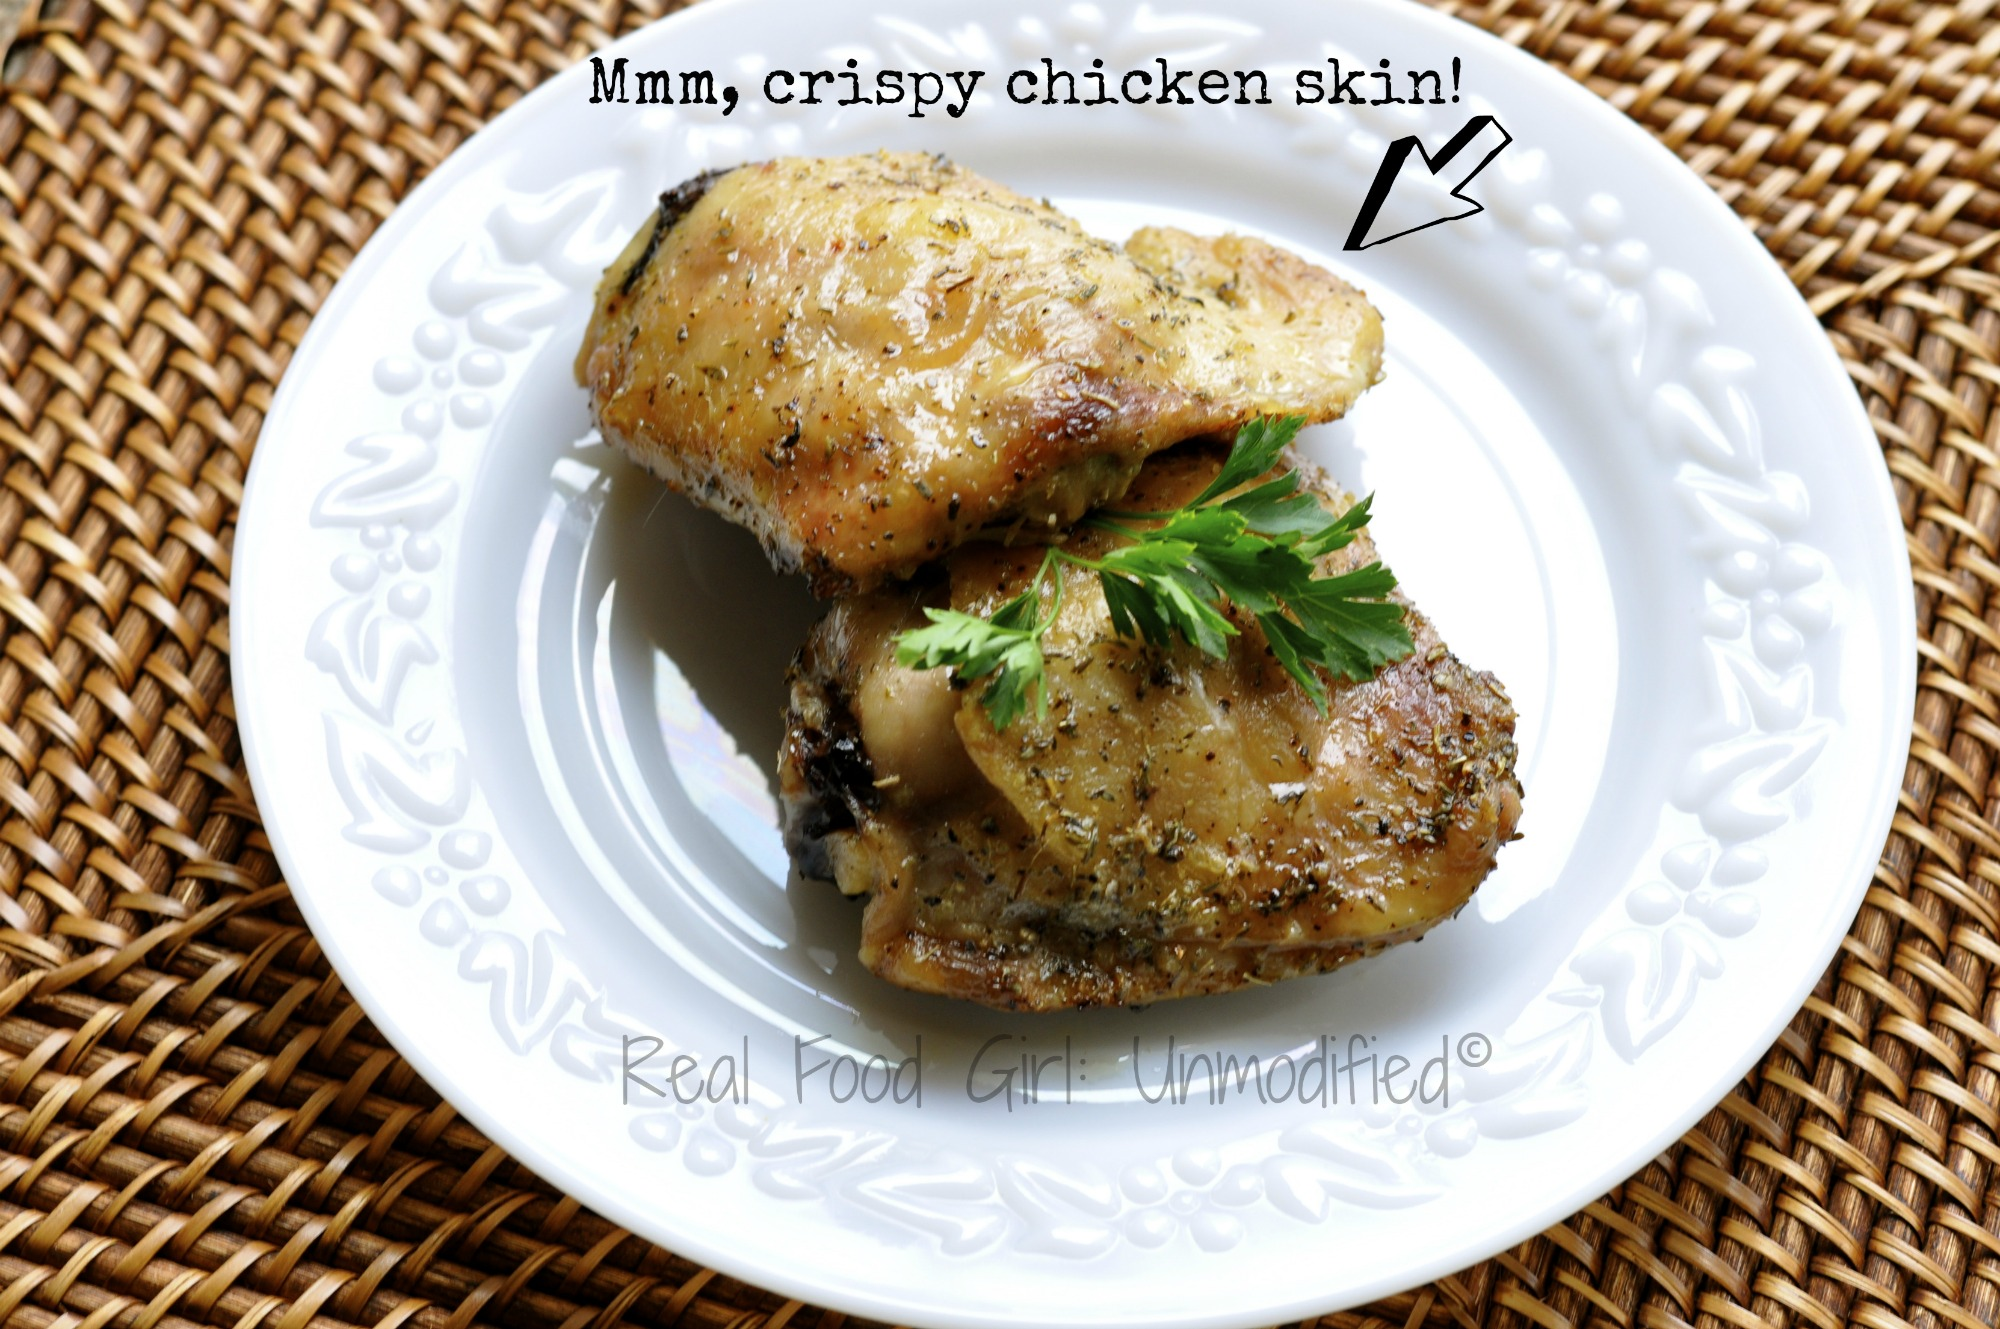 Organic, Non-GMO Herb Roasted Chicken- Real Food Girl: Unmodified